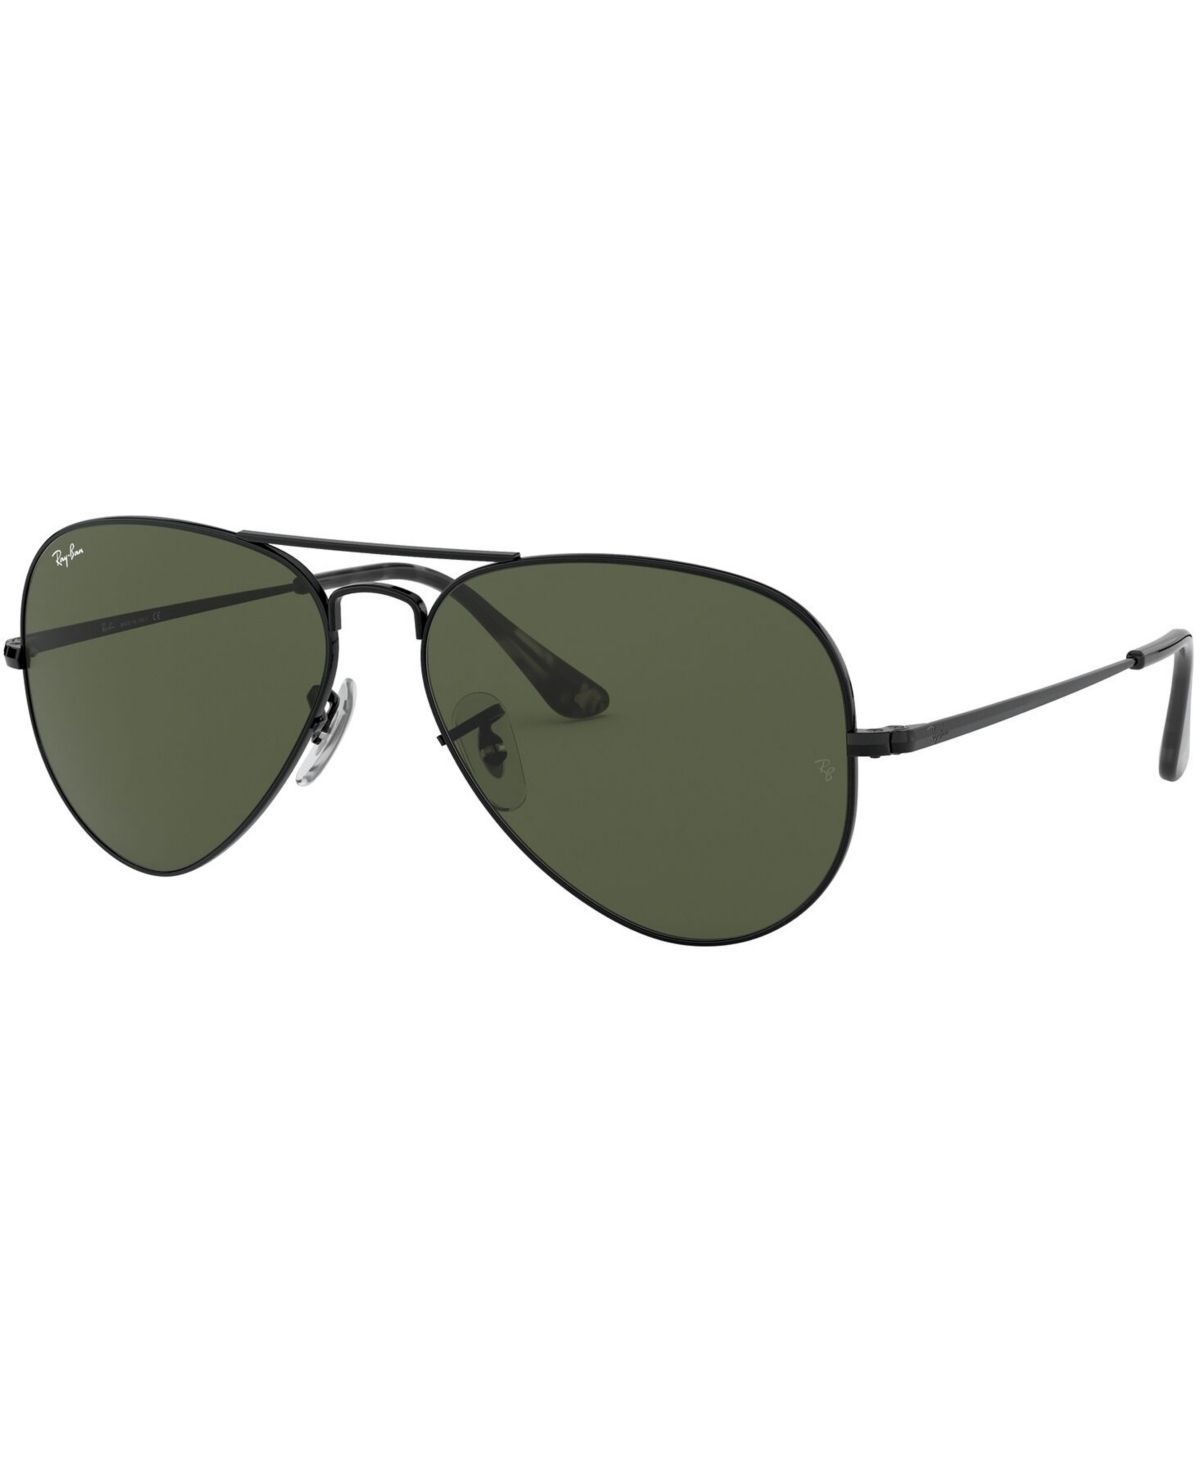 Ray-Ban Sunglasses, RB3689 55 & Reviews - Sunglasses by Sunglass Hut - Handbags & Accessories - Macy's -  Ray-Ban Sunglasses, RB3689 55 –  - #Accessories #Handbags #Hut #LouisVuittonMonogram #Macys #RayBanSunglasses #RayBans #RayBan #RB3689 #Reviews #Sunglass #Sunglasses #WhoWhatWear